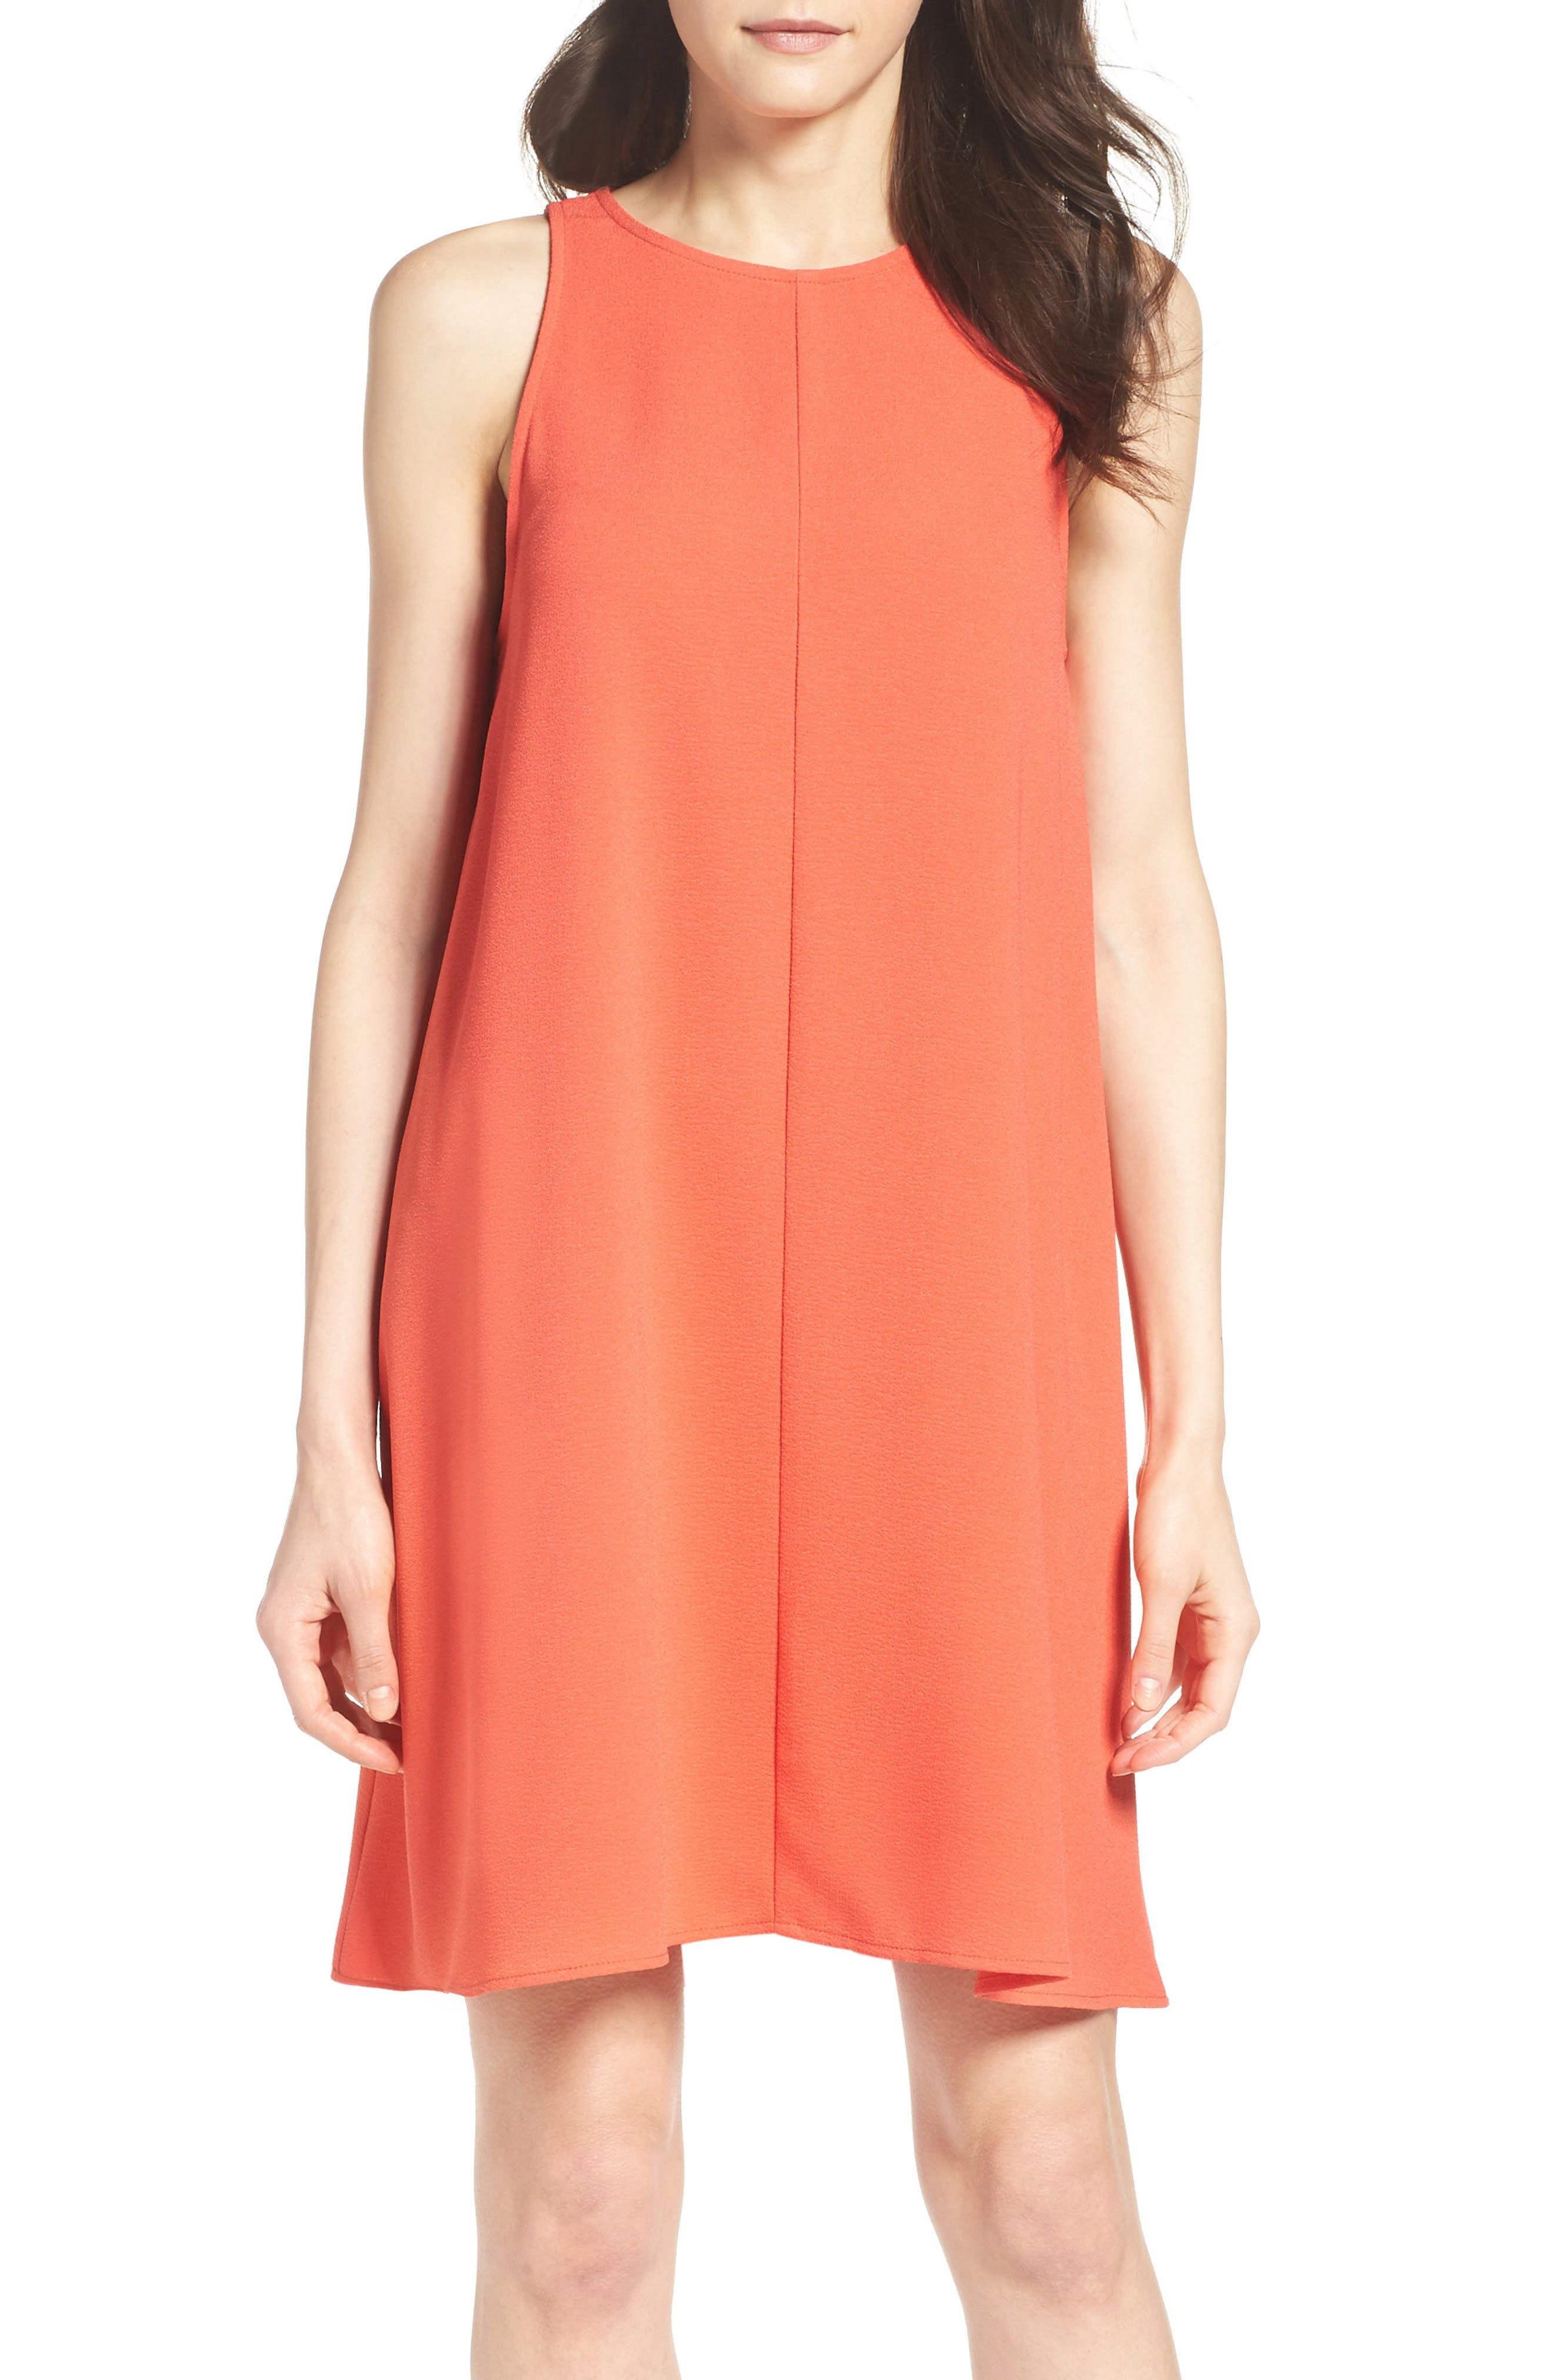 CHARLES HENRY Crepe Sleeveless Dress